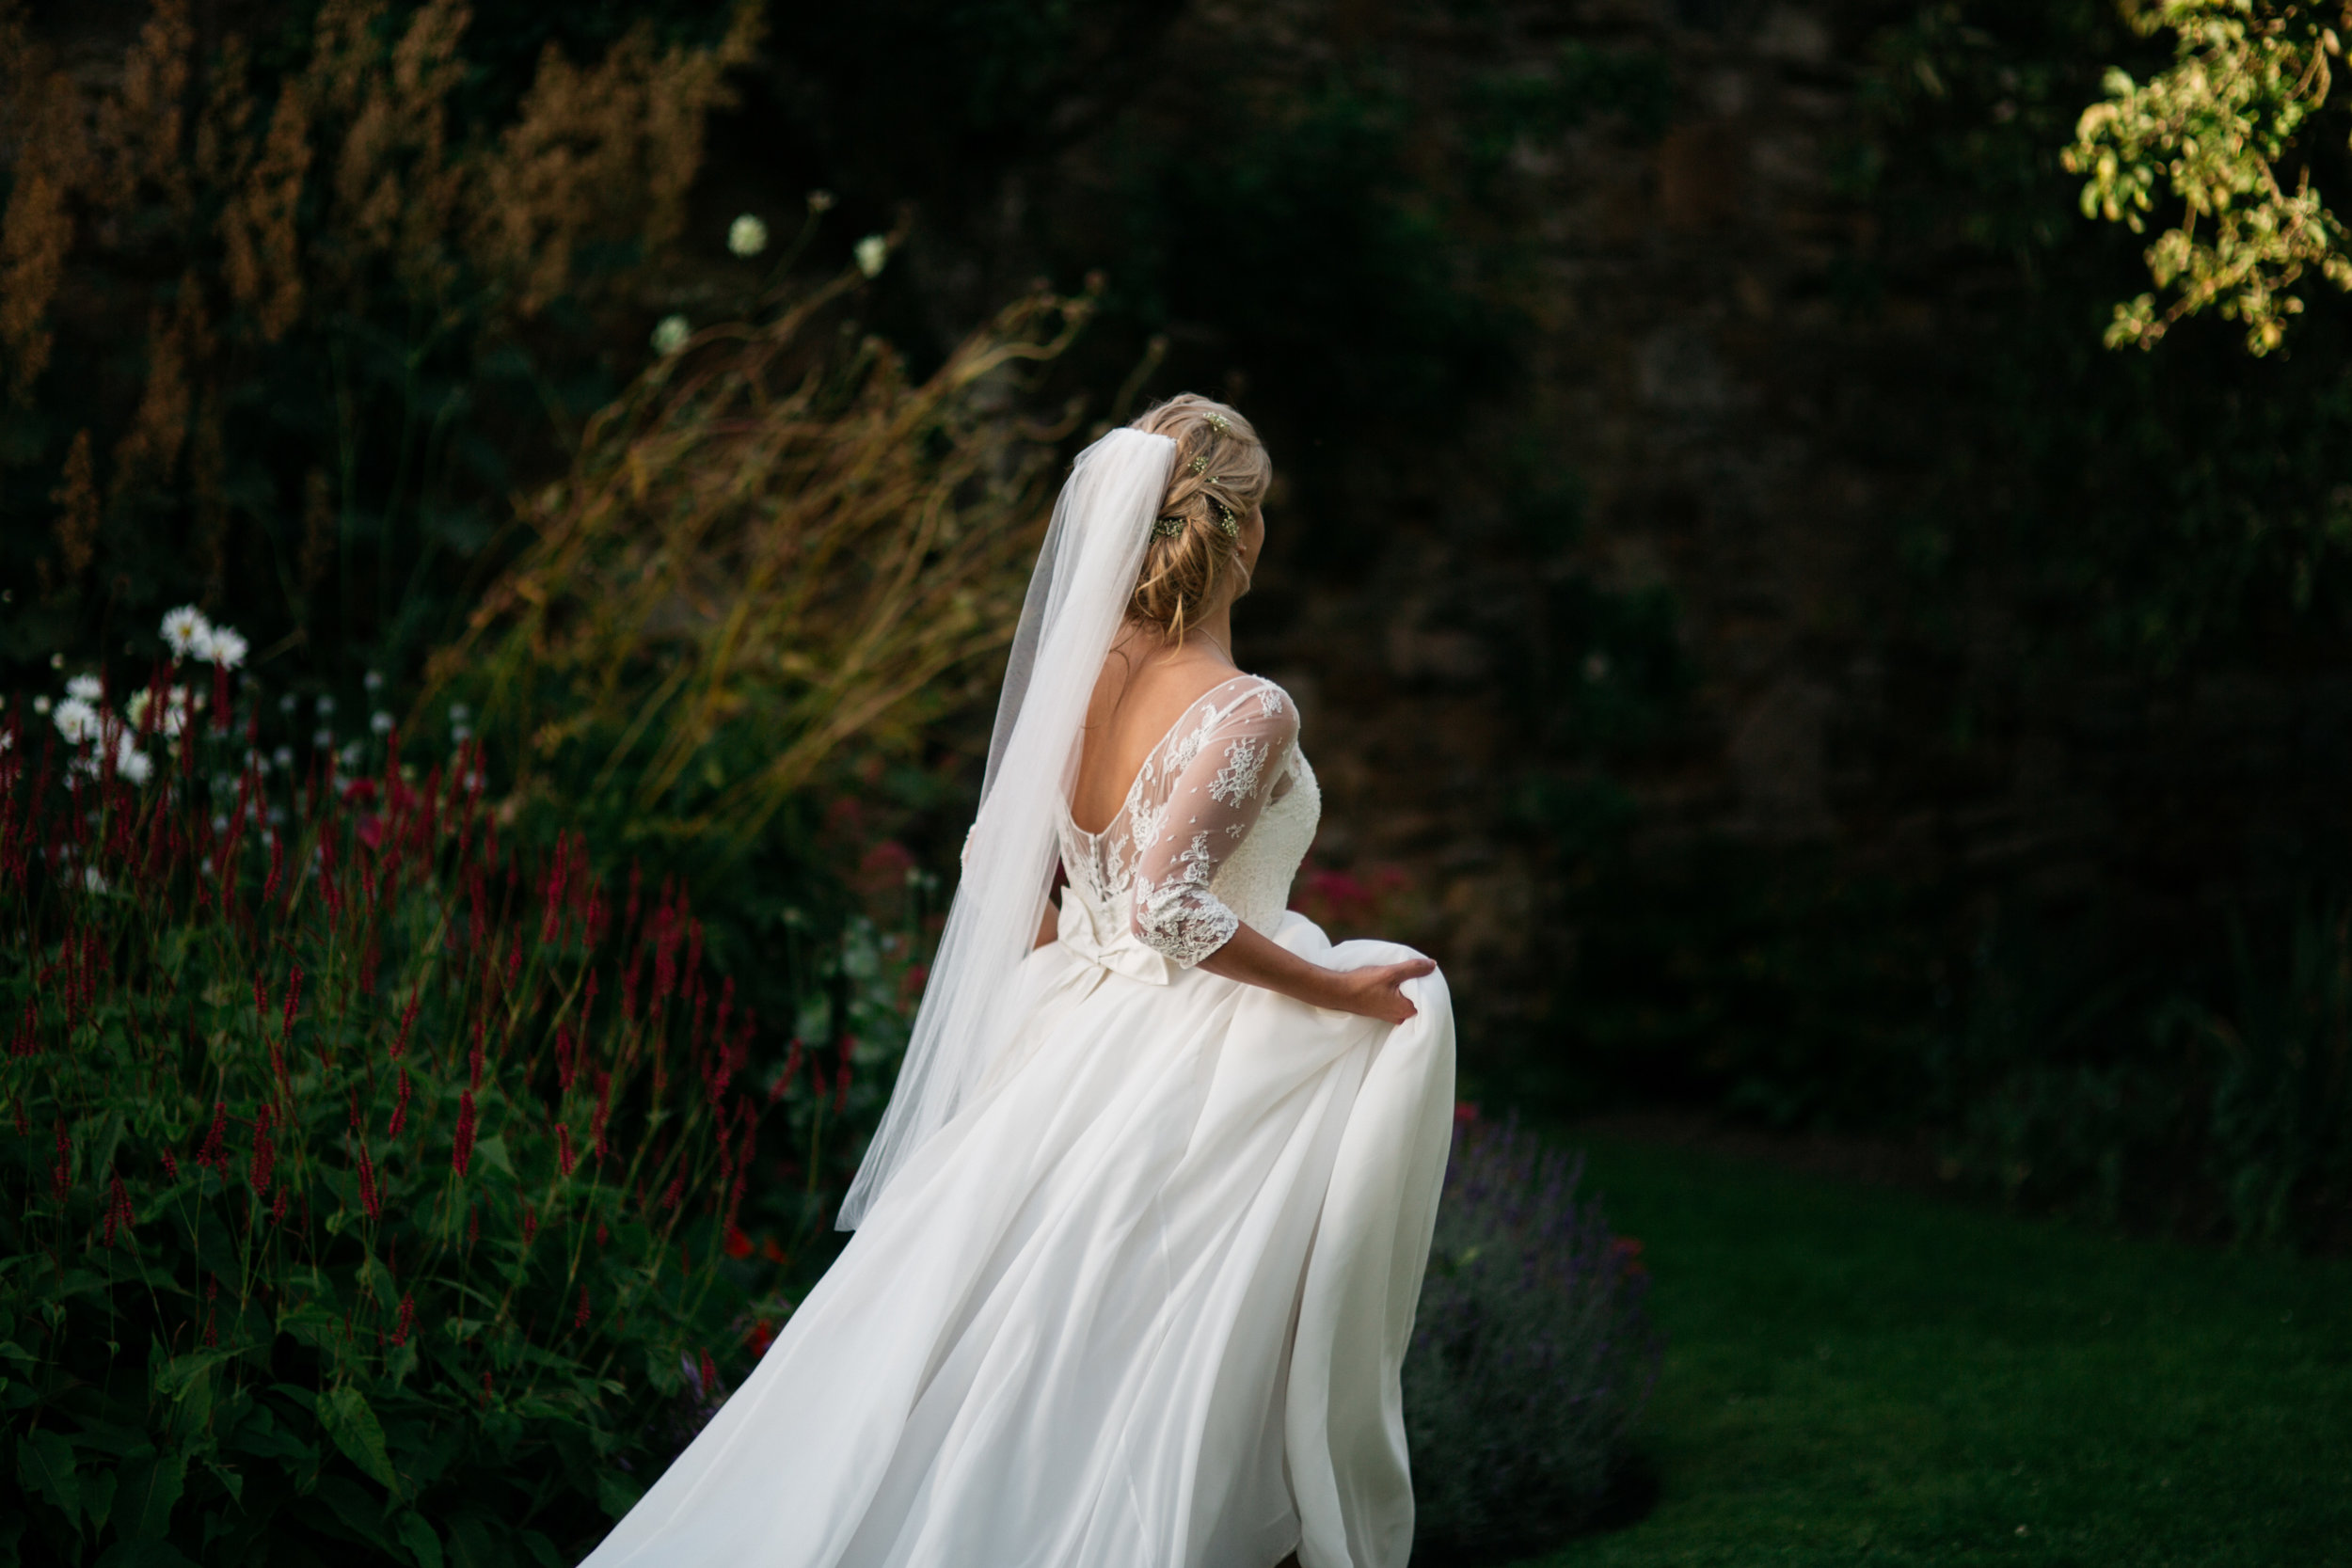 Wedding: Photography by Cameron Pretice